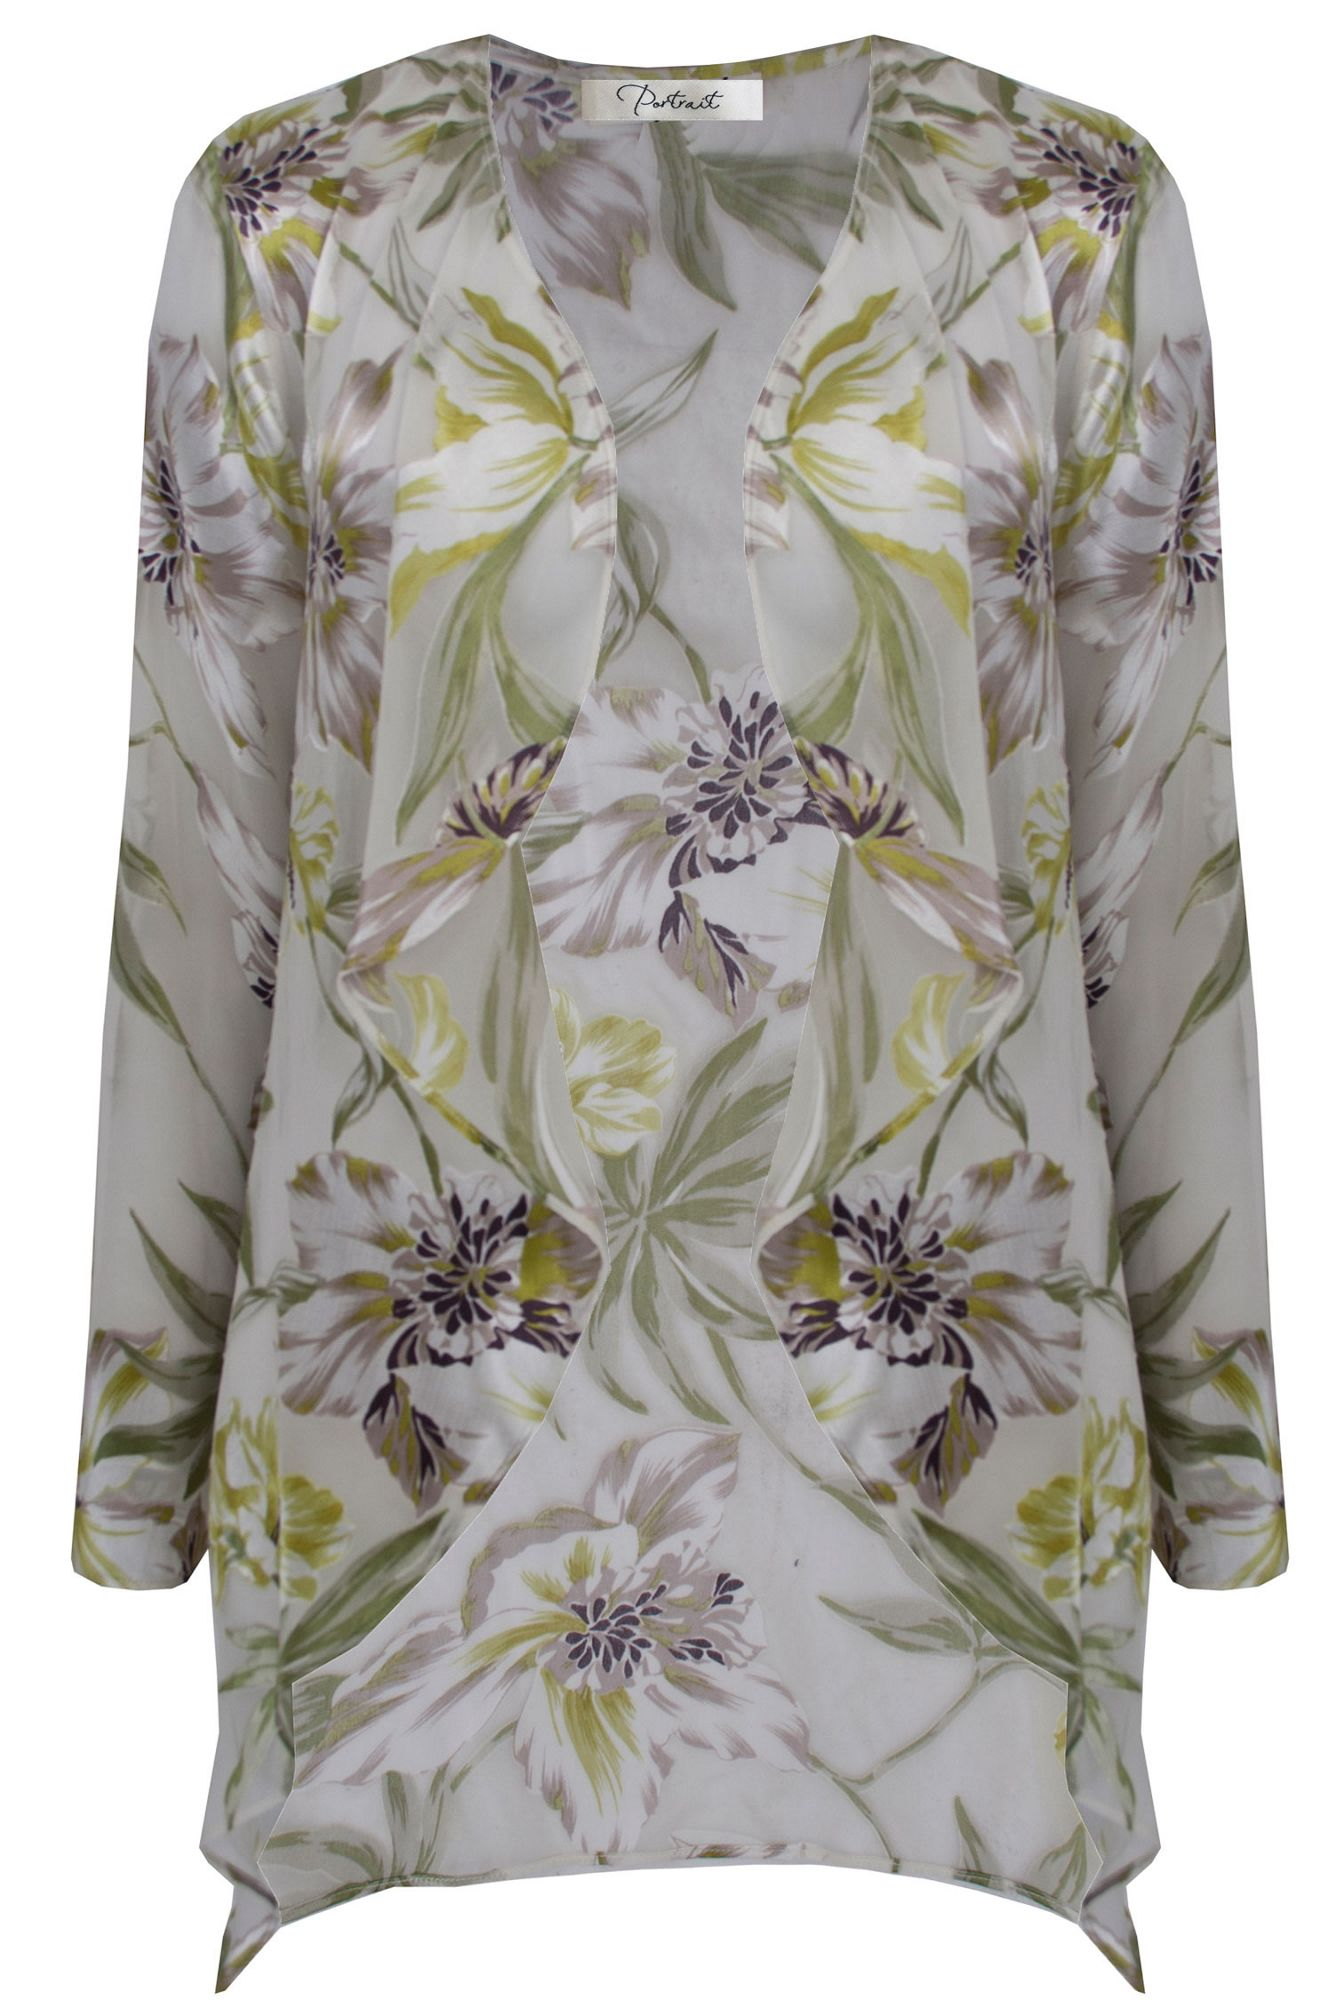 Ann Harvey Green Vintage Floral Waterfall Jacket In Gray